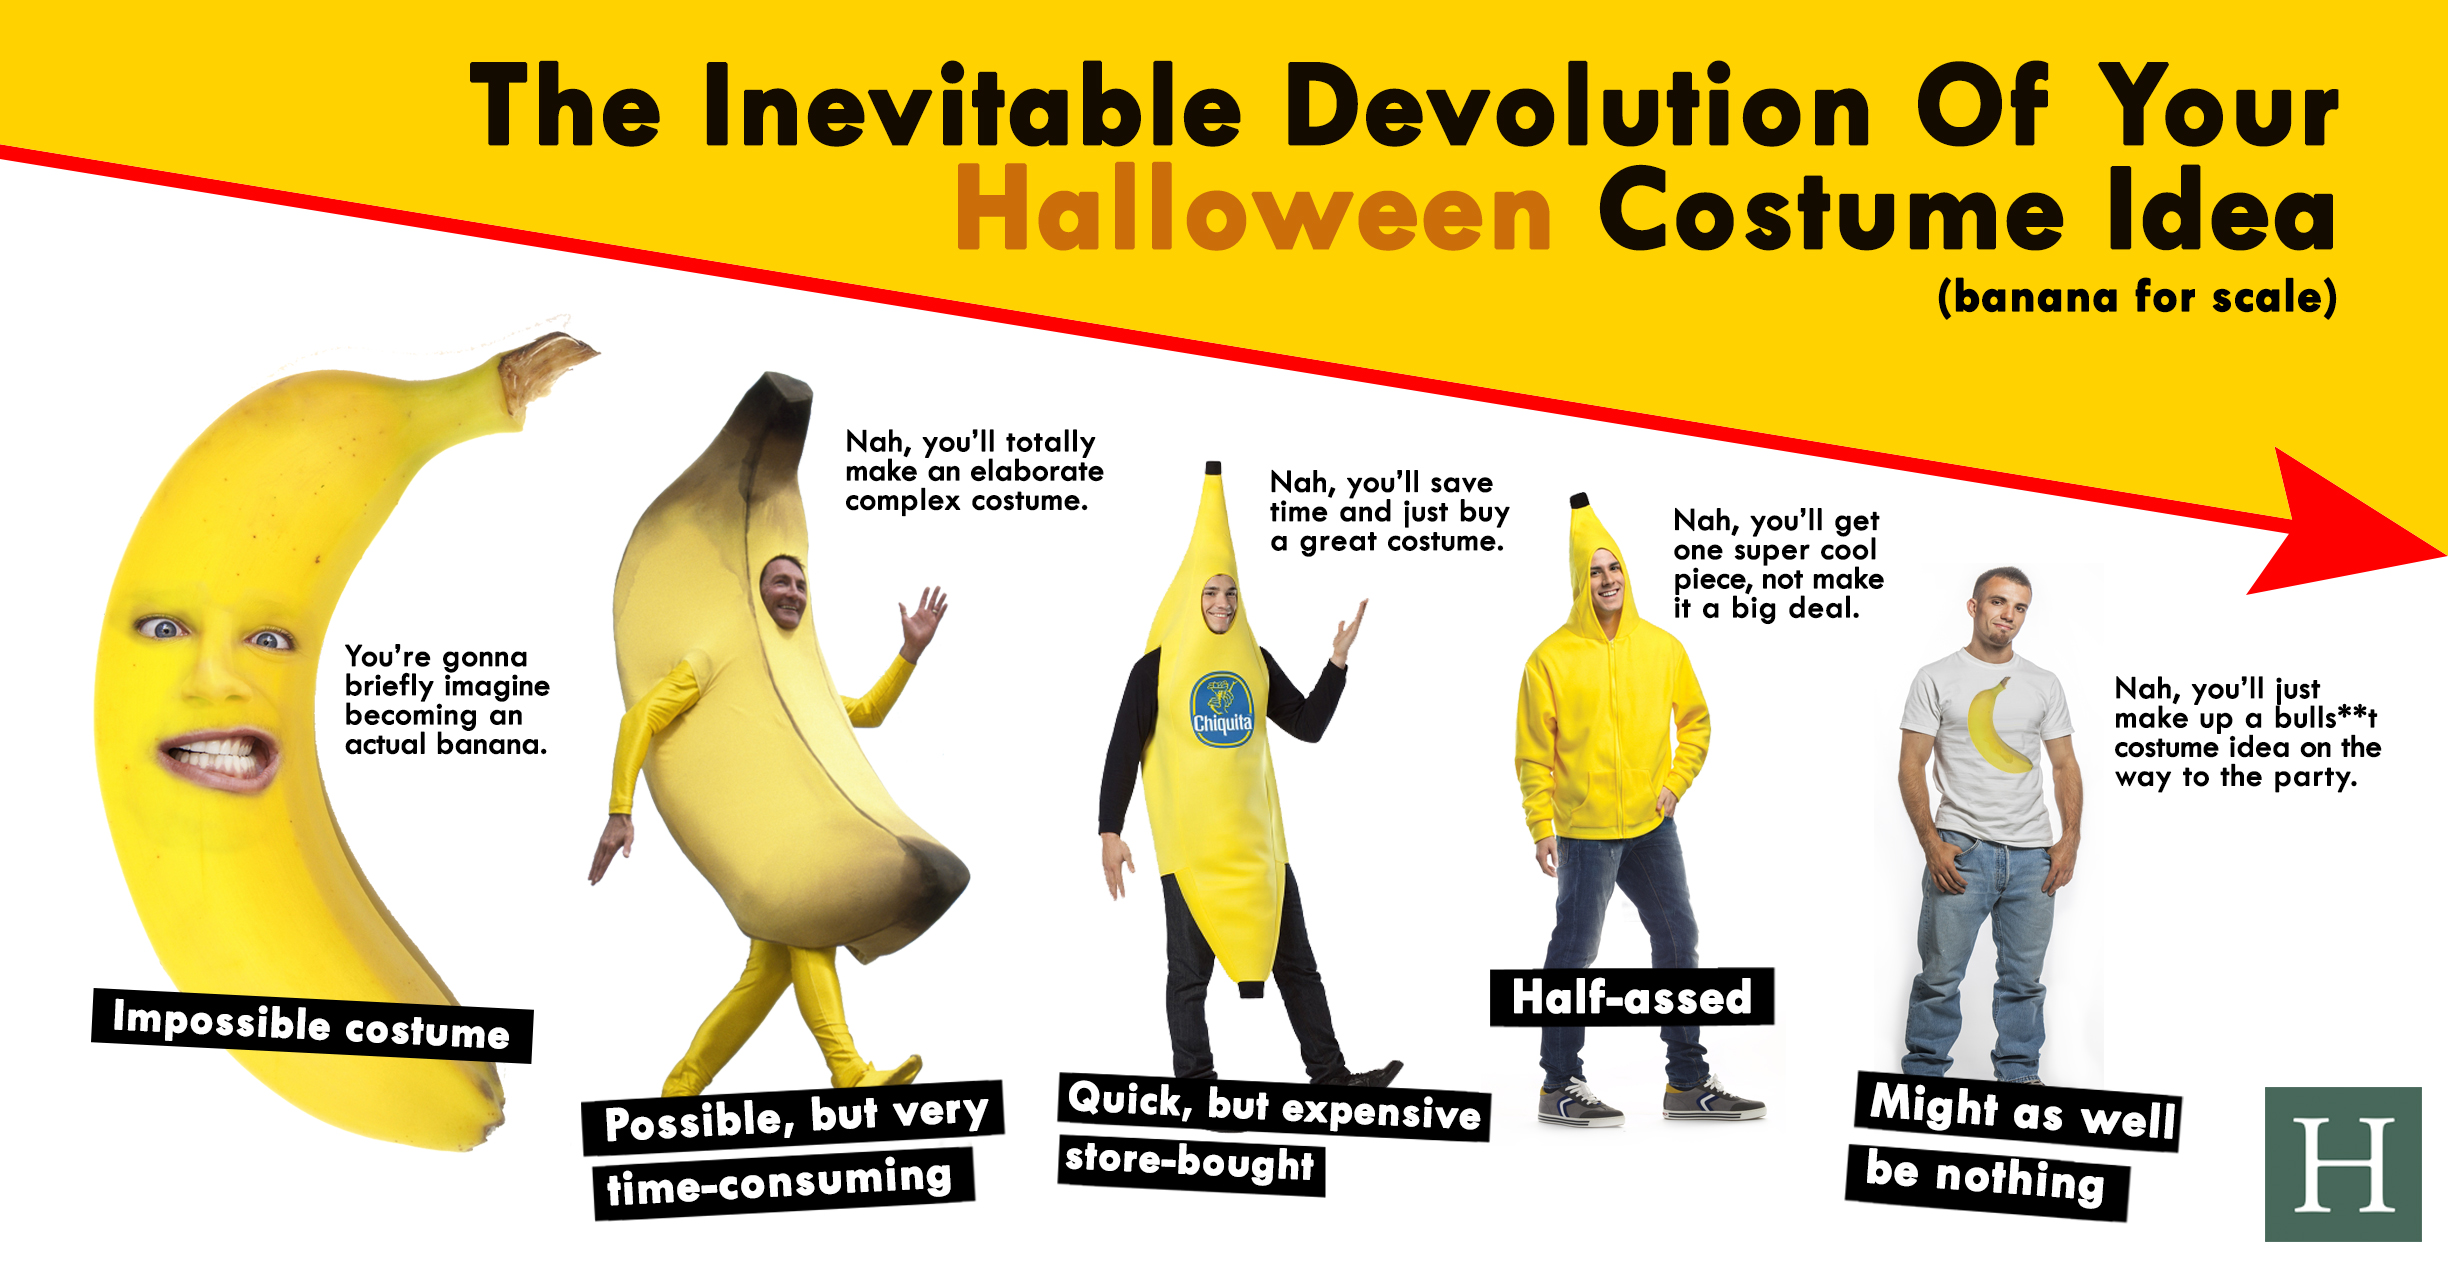 Halloween Costume Ideas 2020 Pun The Inevitable Devolution Of Your Halloween Costume Idea | HuffPost